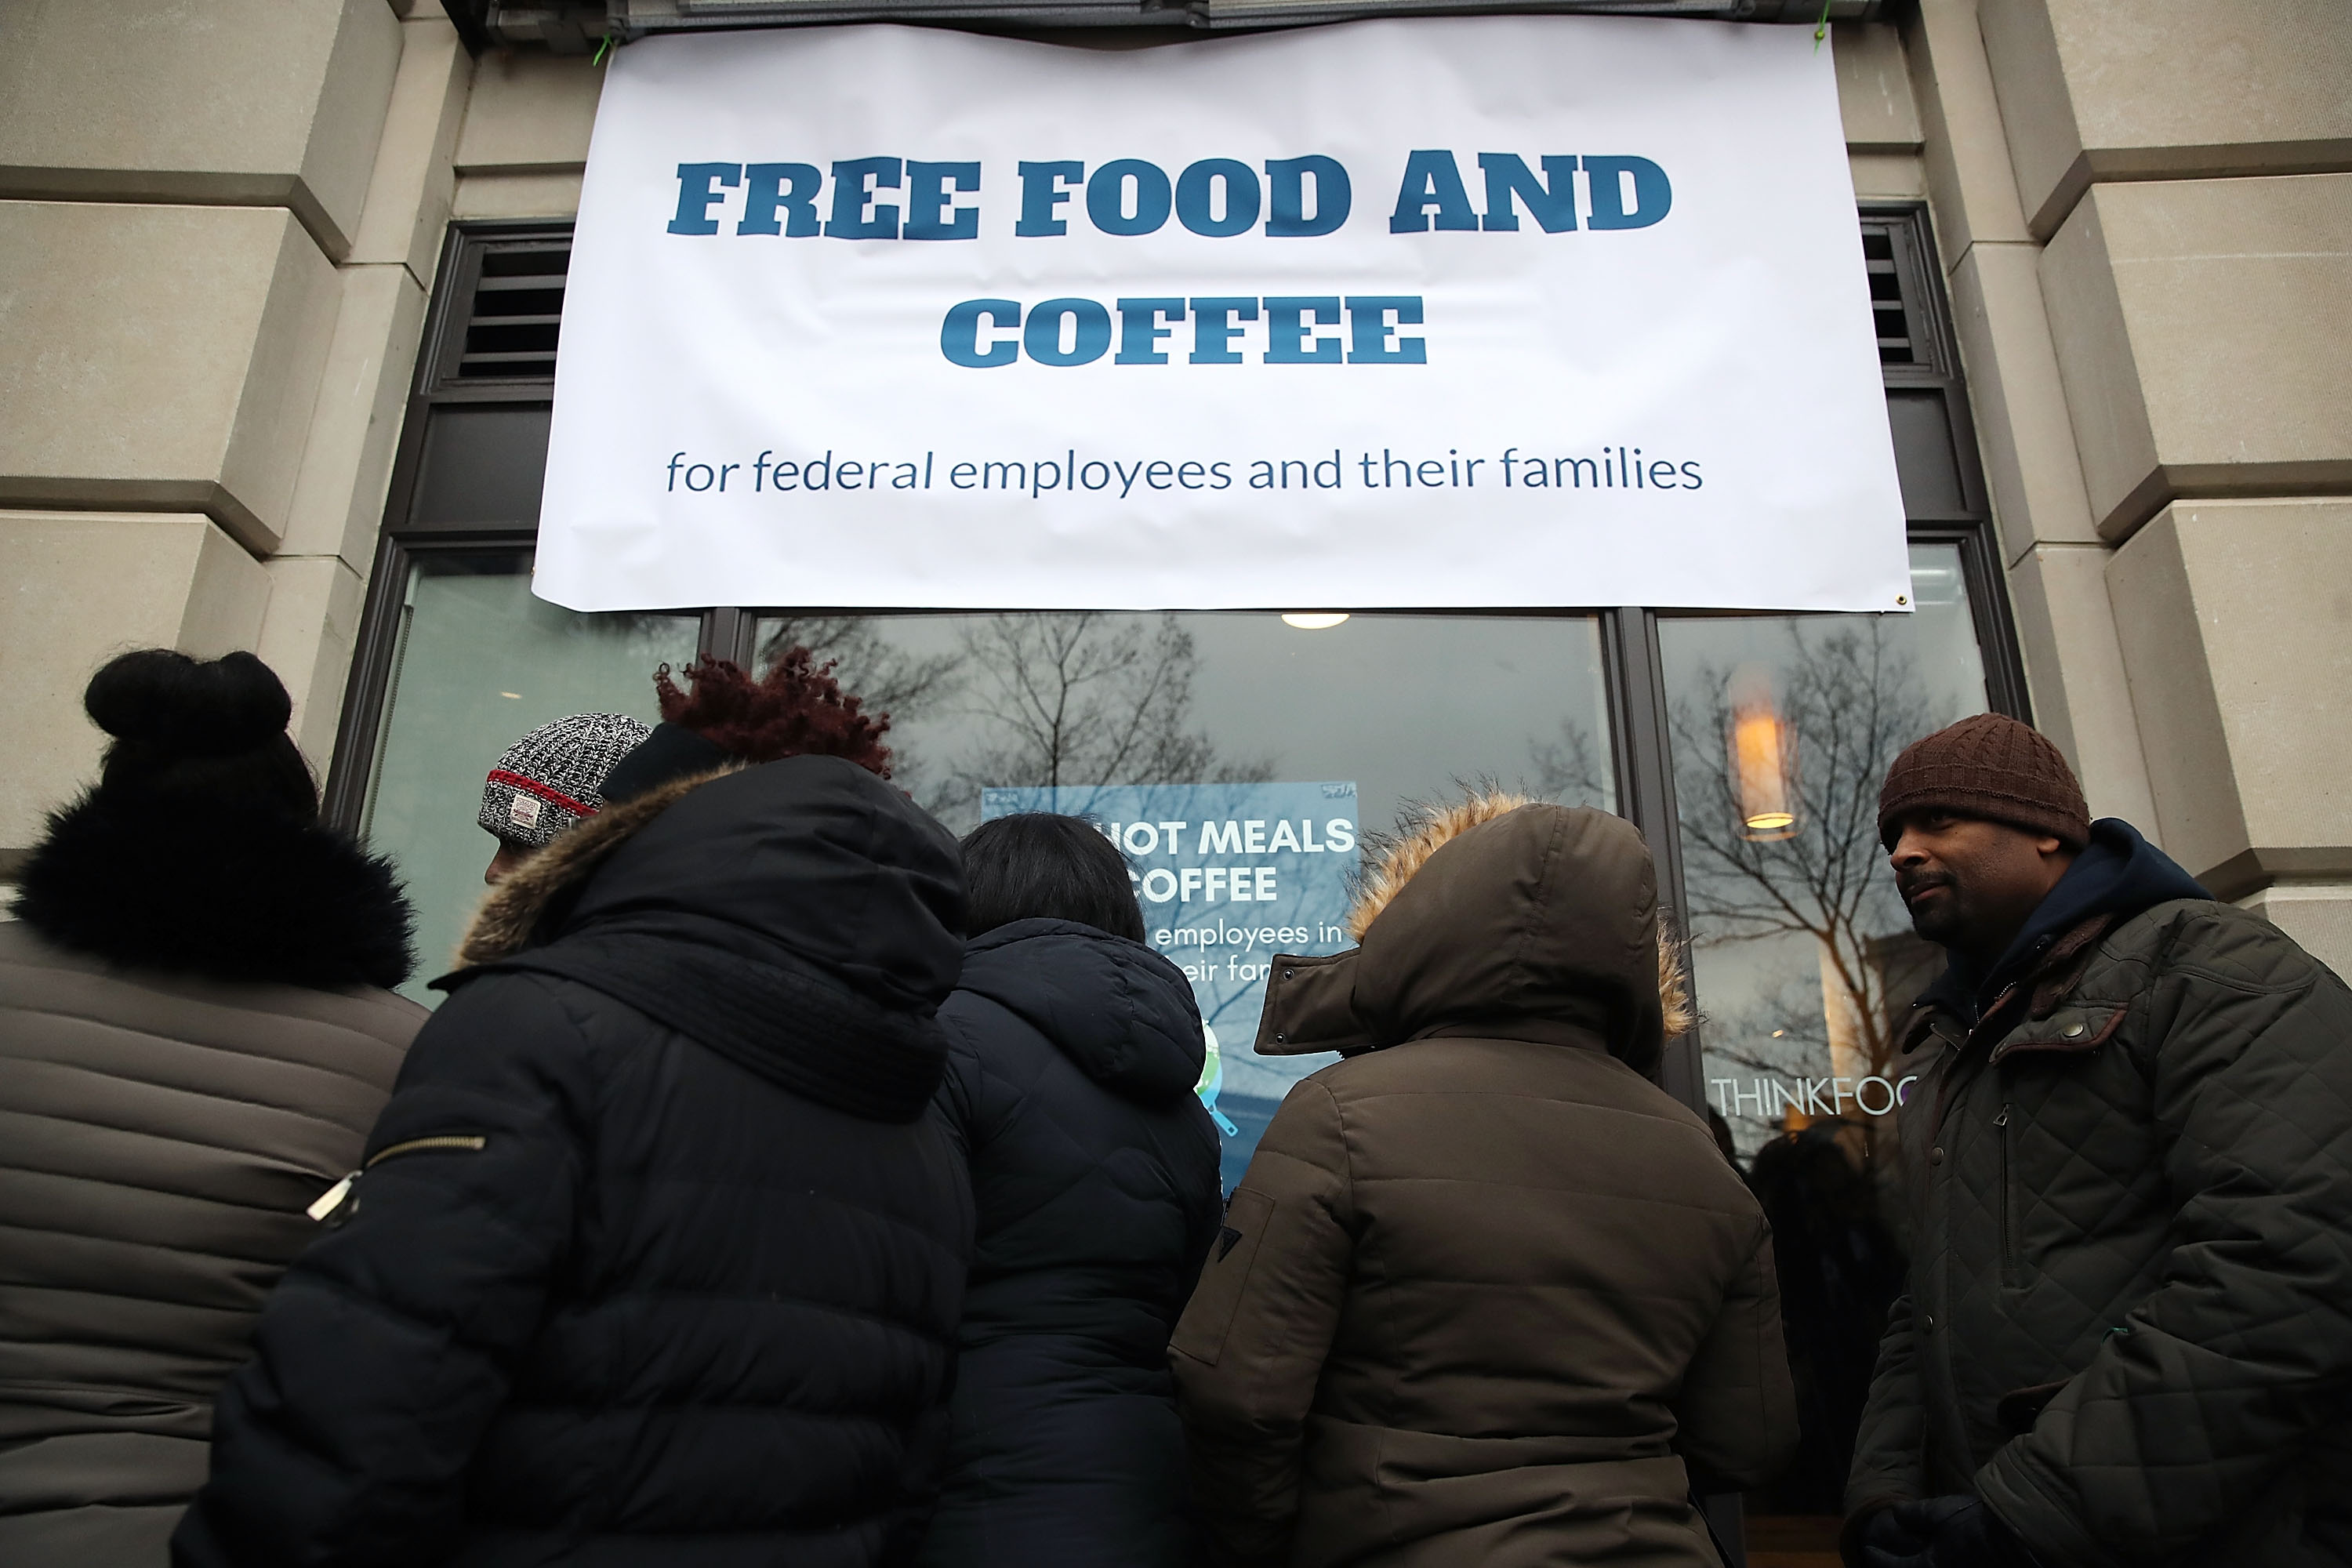 WASHINGTON, DC - JANUARY 16: People line up to get a free lunch at a pop-up eatery hosted by Celebrity Chef Jose Andres for furloughed government employees and their families, on January 16, 2019 in Washington, DC. The U.S. government is in the 26th day of a partial shutdown. (Photo by Mark Wilson/Getty Images)